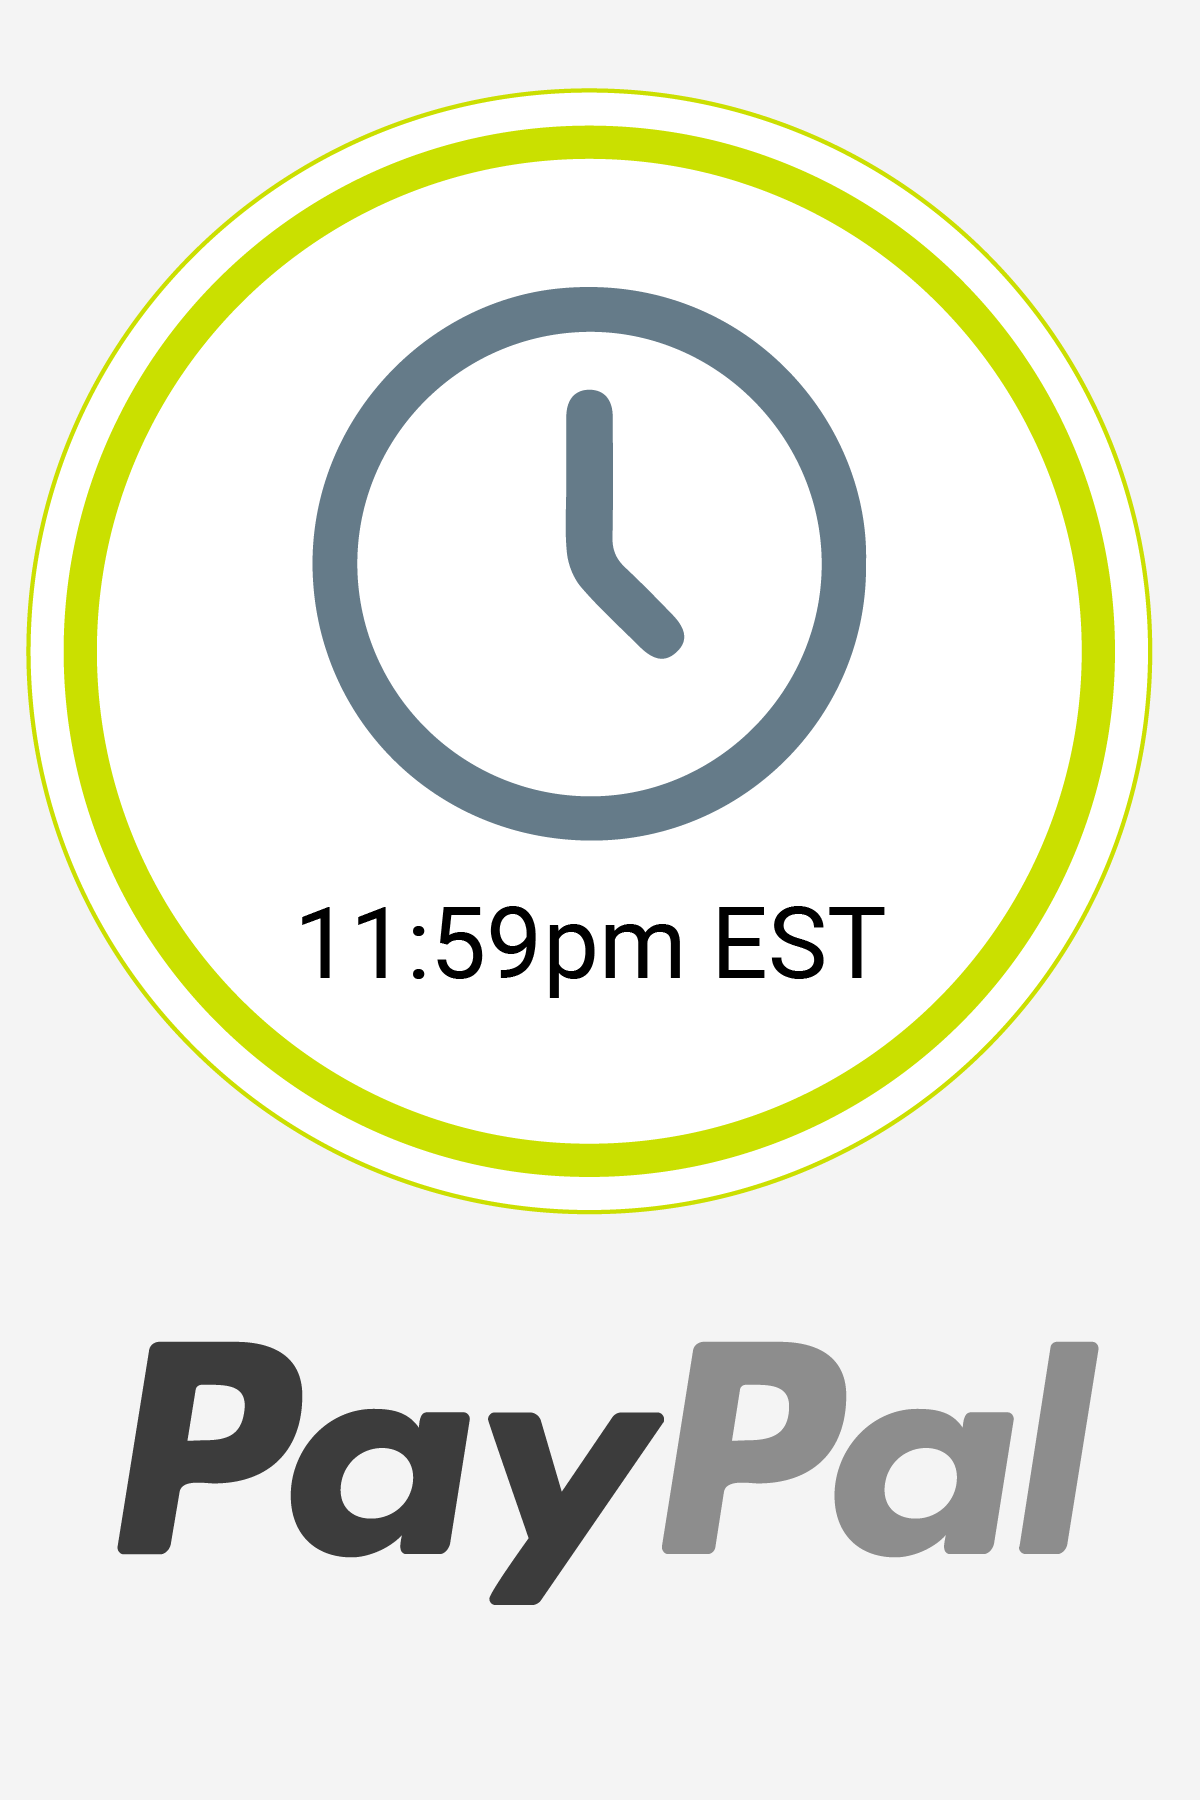 paypal_1159pm-01.png